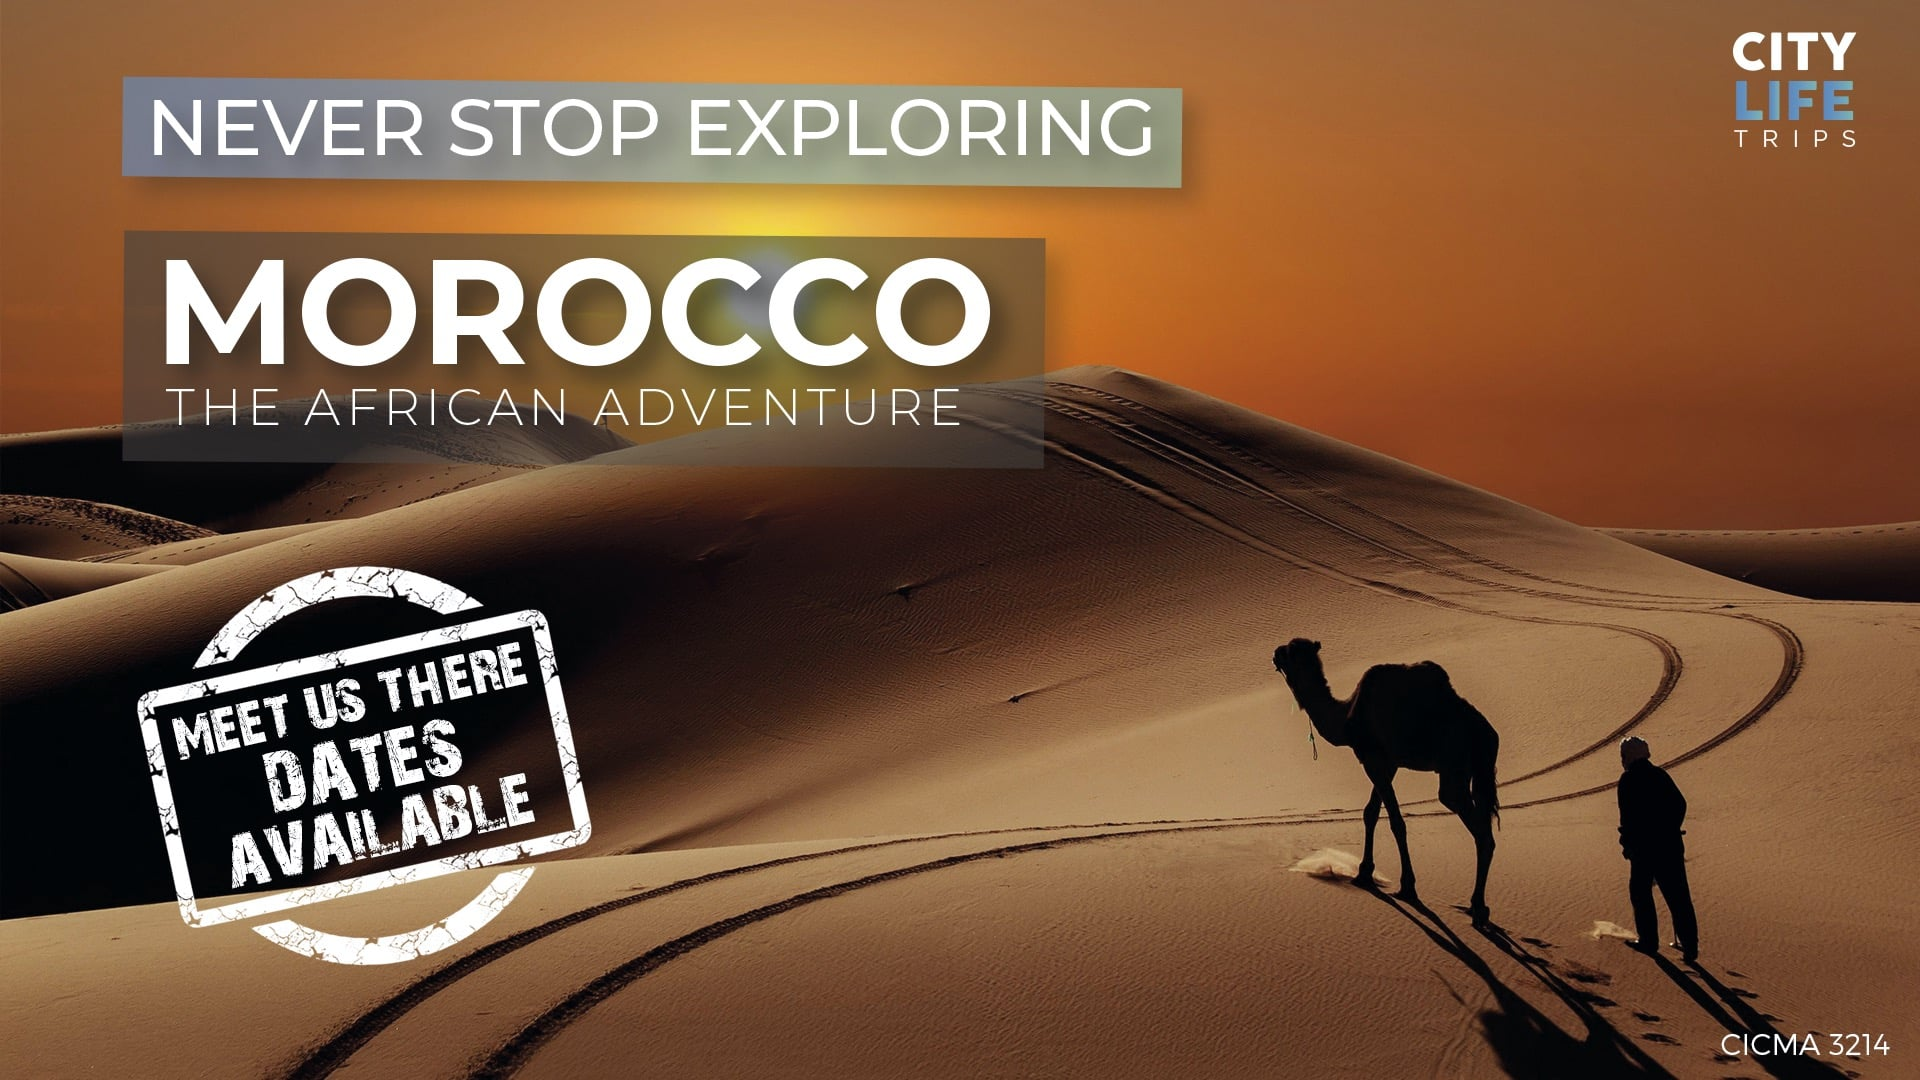 Morocco - The African Adventure #3